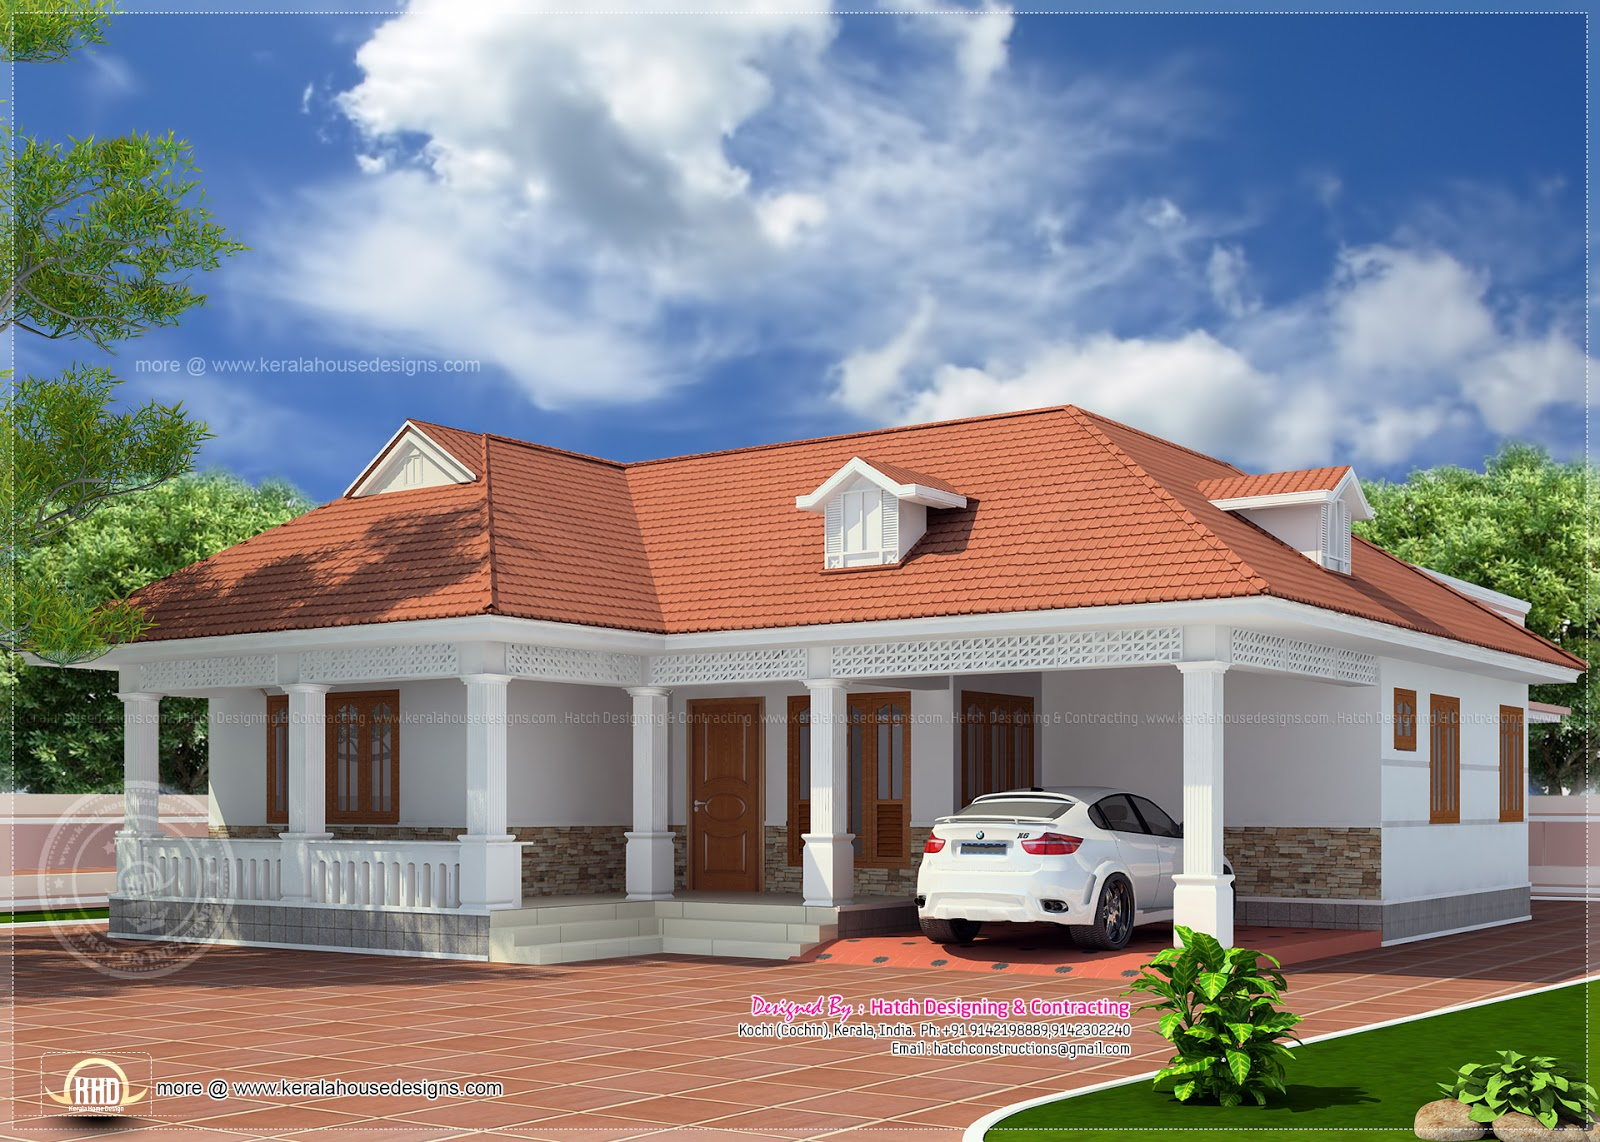 1850 kerala style home elevation kerala home House designs single floor